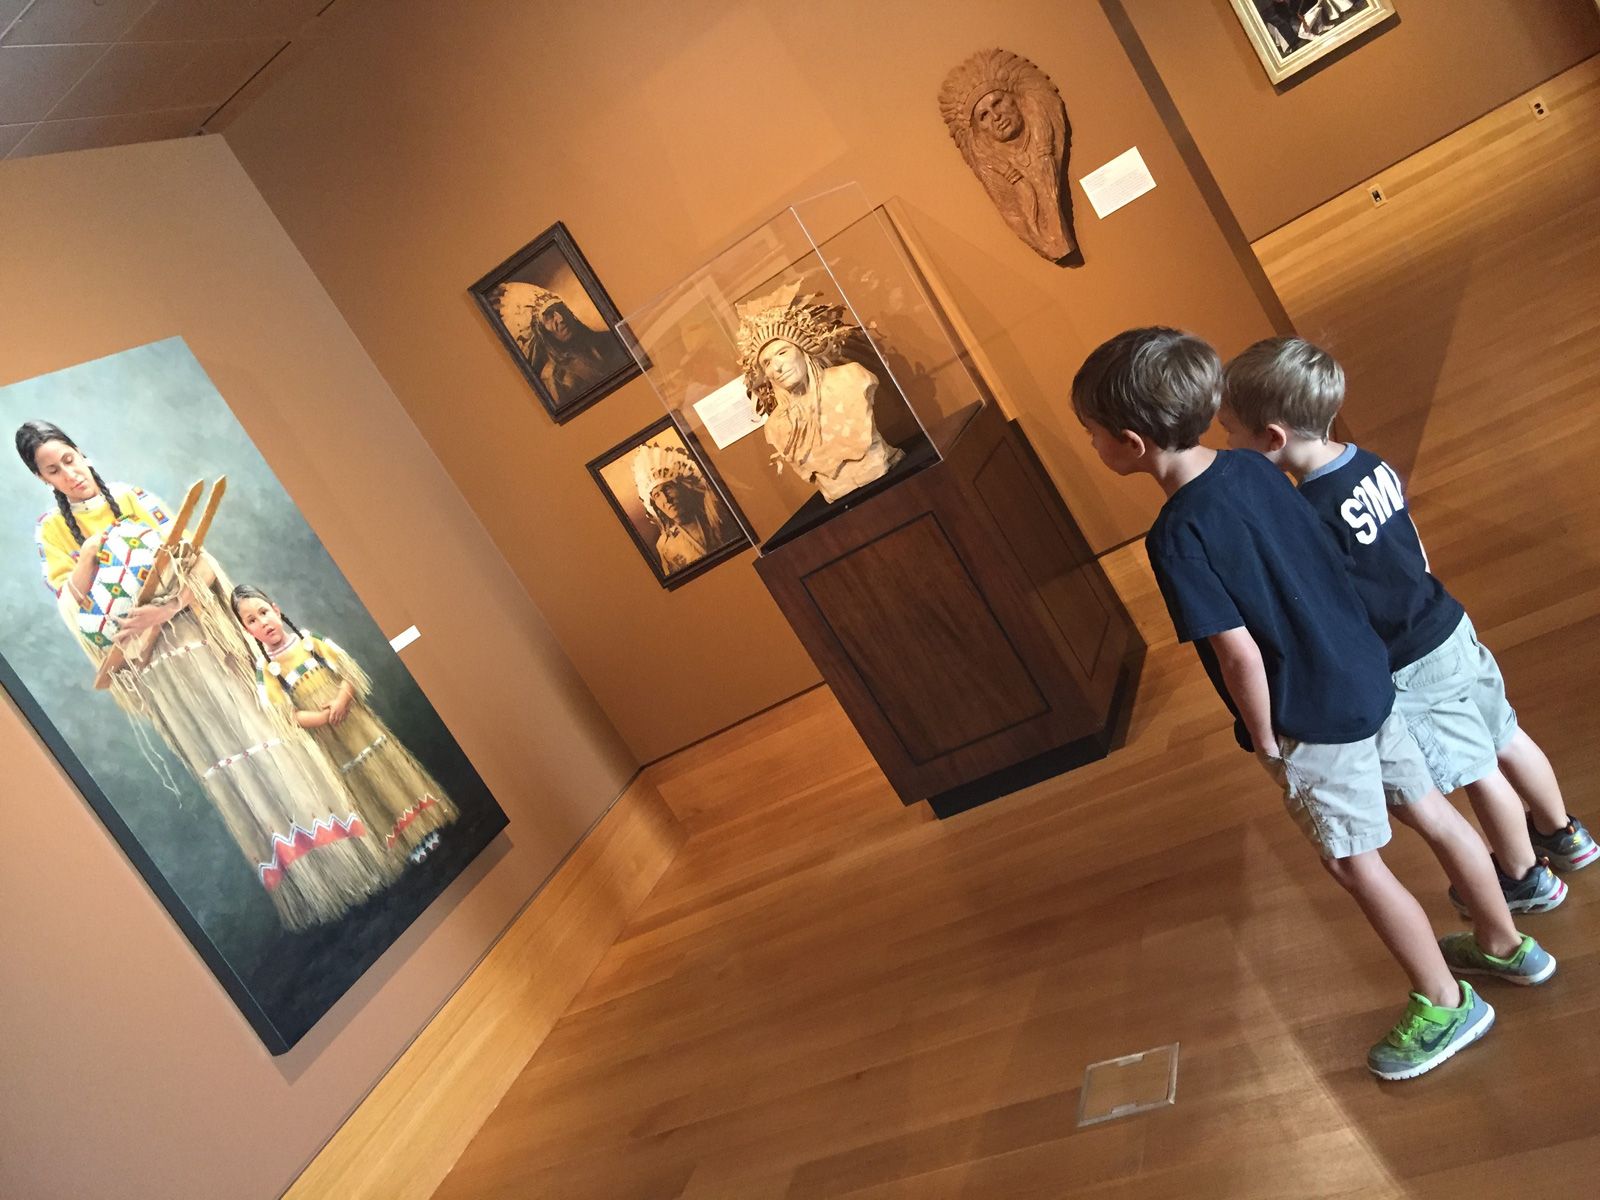 Explore galleries full of paintings, sculpture, photos and more at Booth Western Art Museum. Photo credit: Lesli Peterson